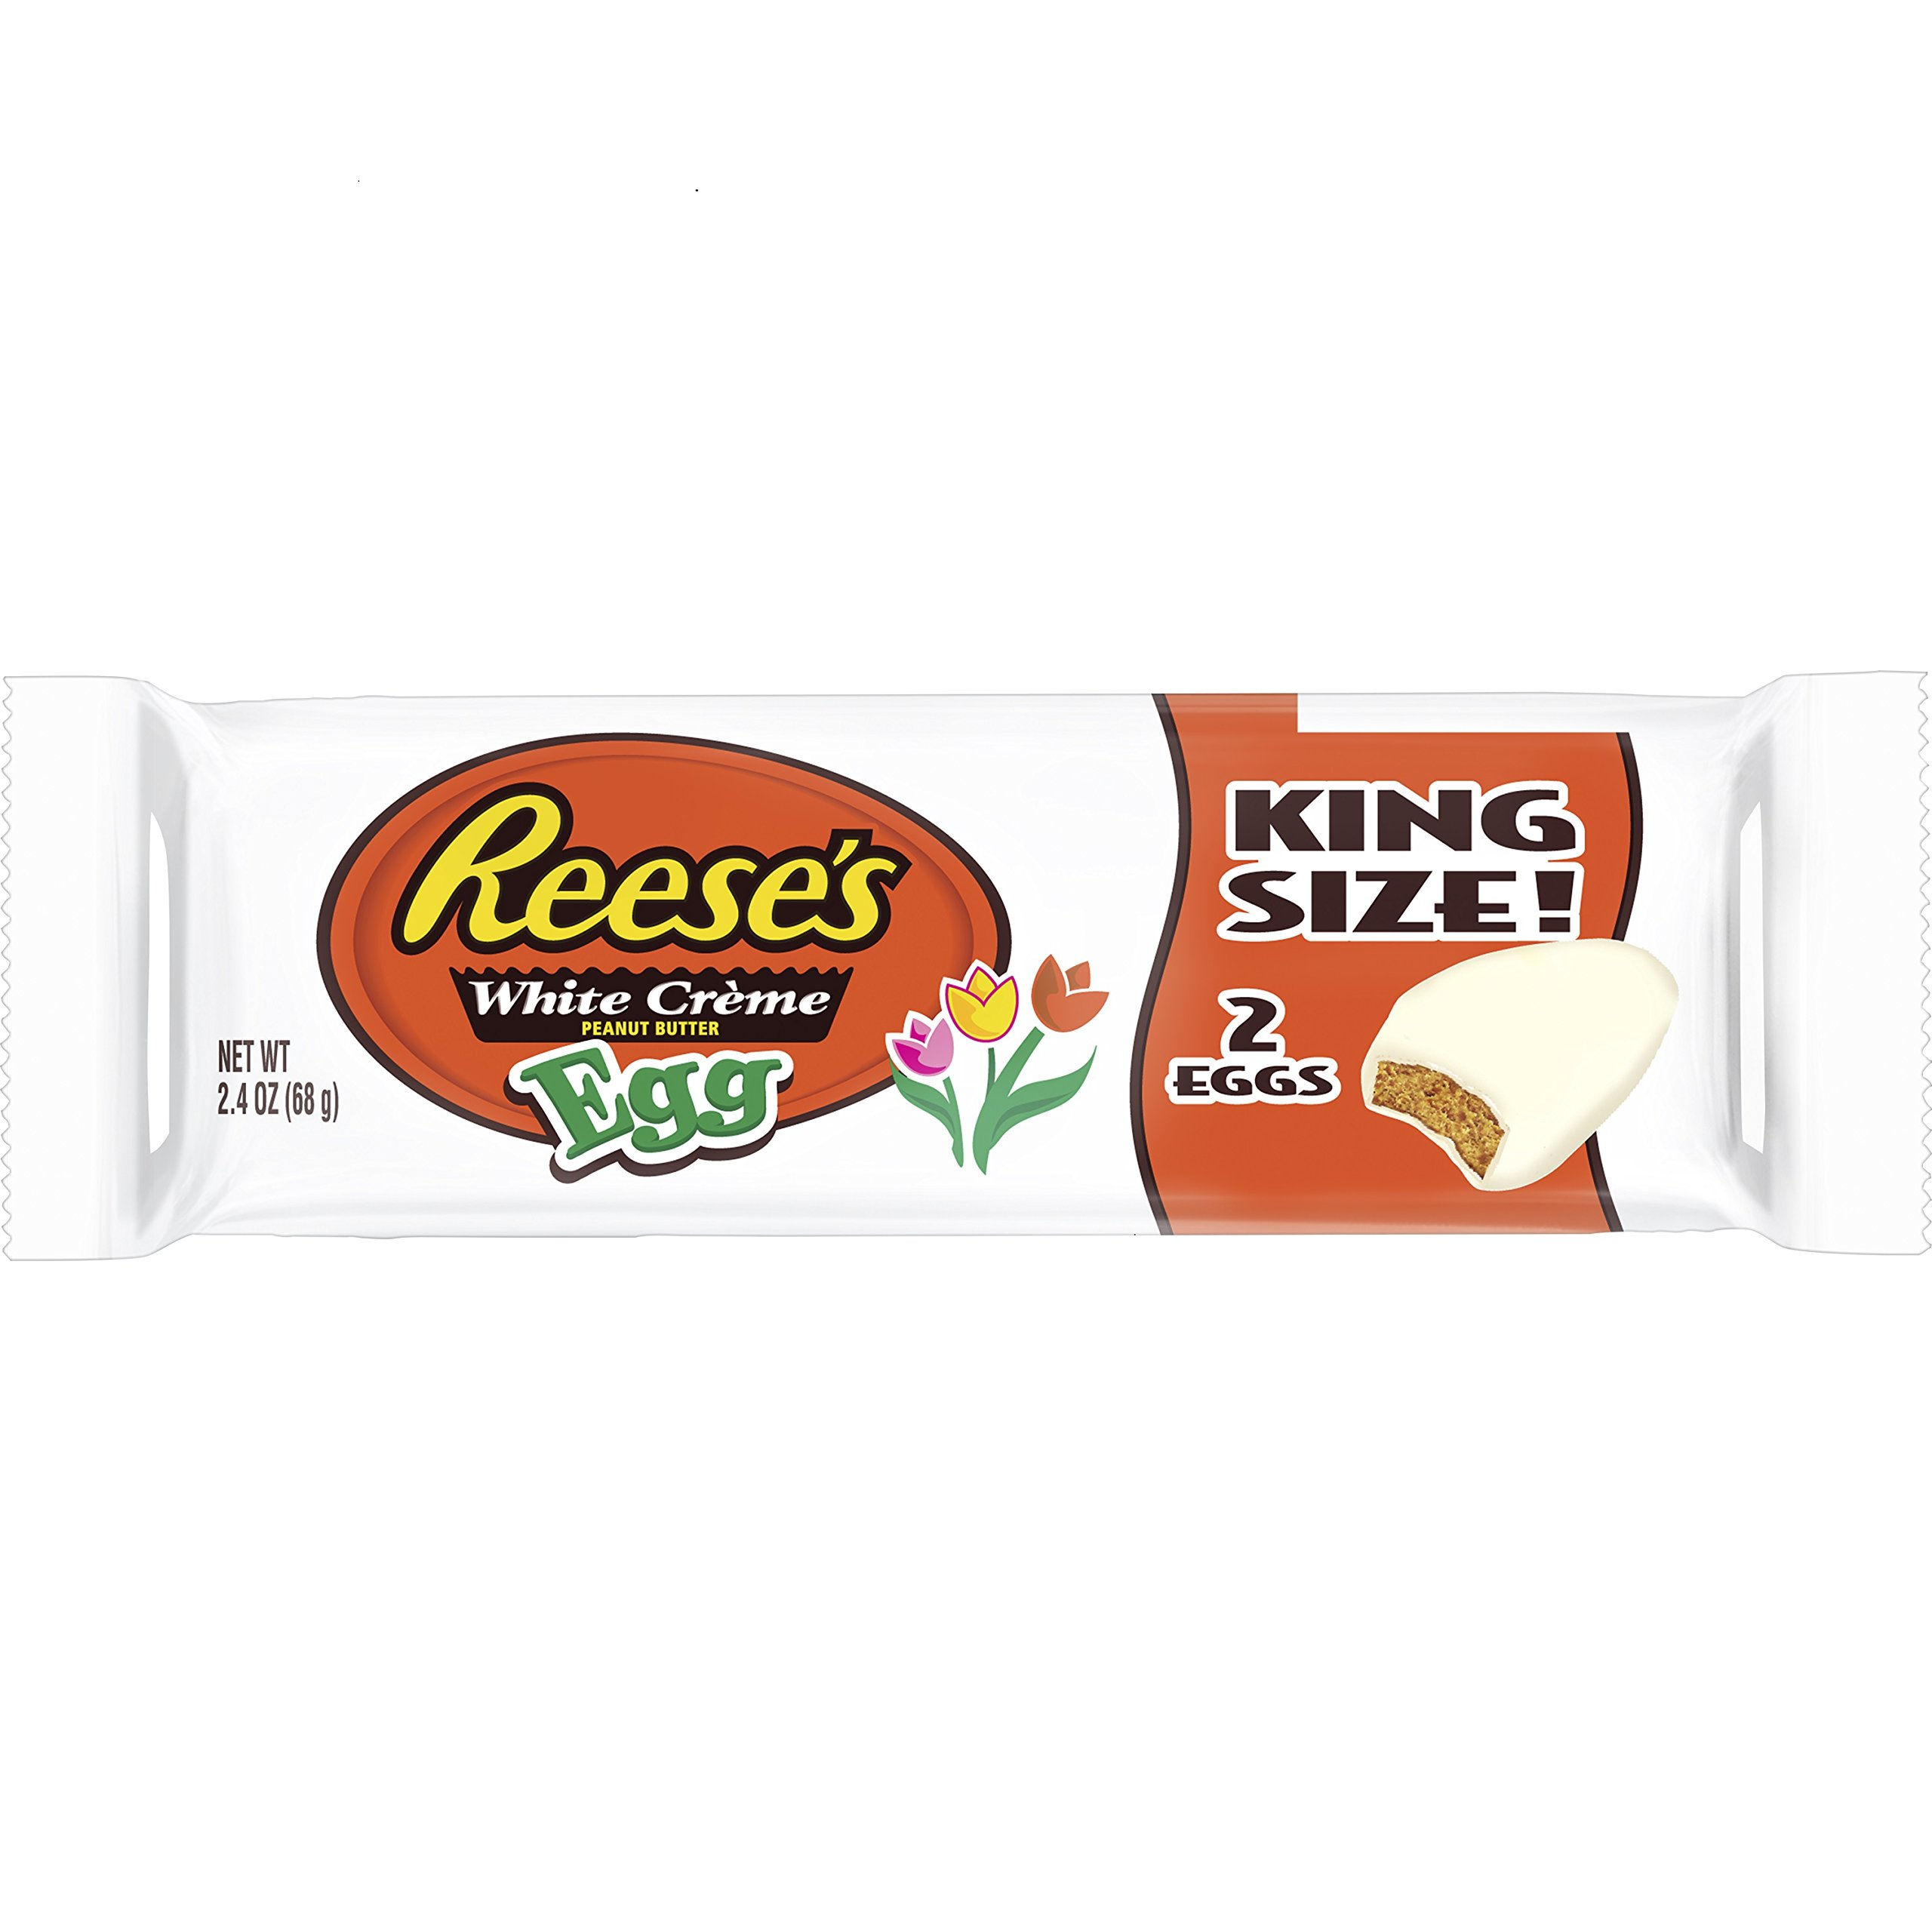 REESE'S White Cr√me Peanut Butter Egg, White Creme Covered Peanut Butter Egg Shaped Candy in Packaging, 2.4 Ounce Package (Pack of 24) by Reese's